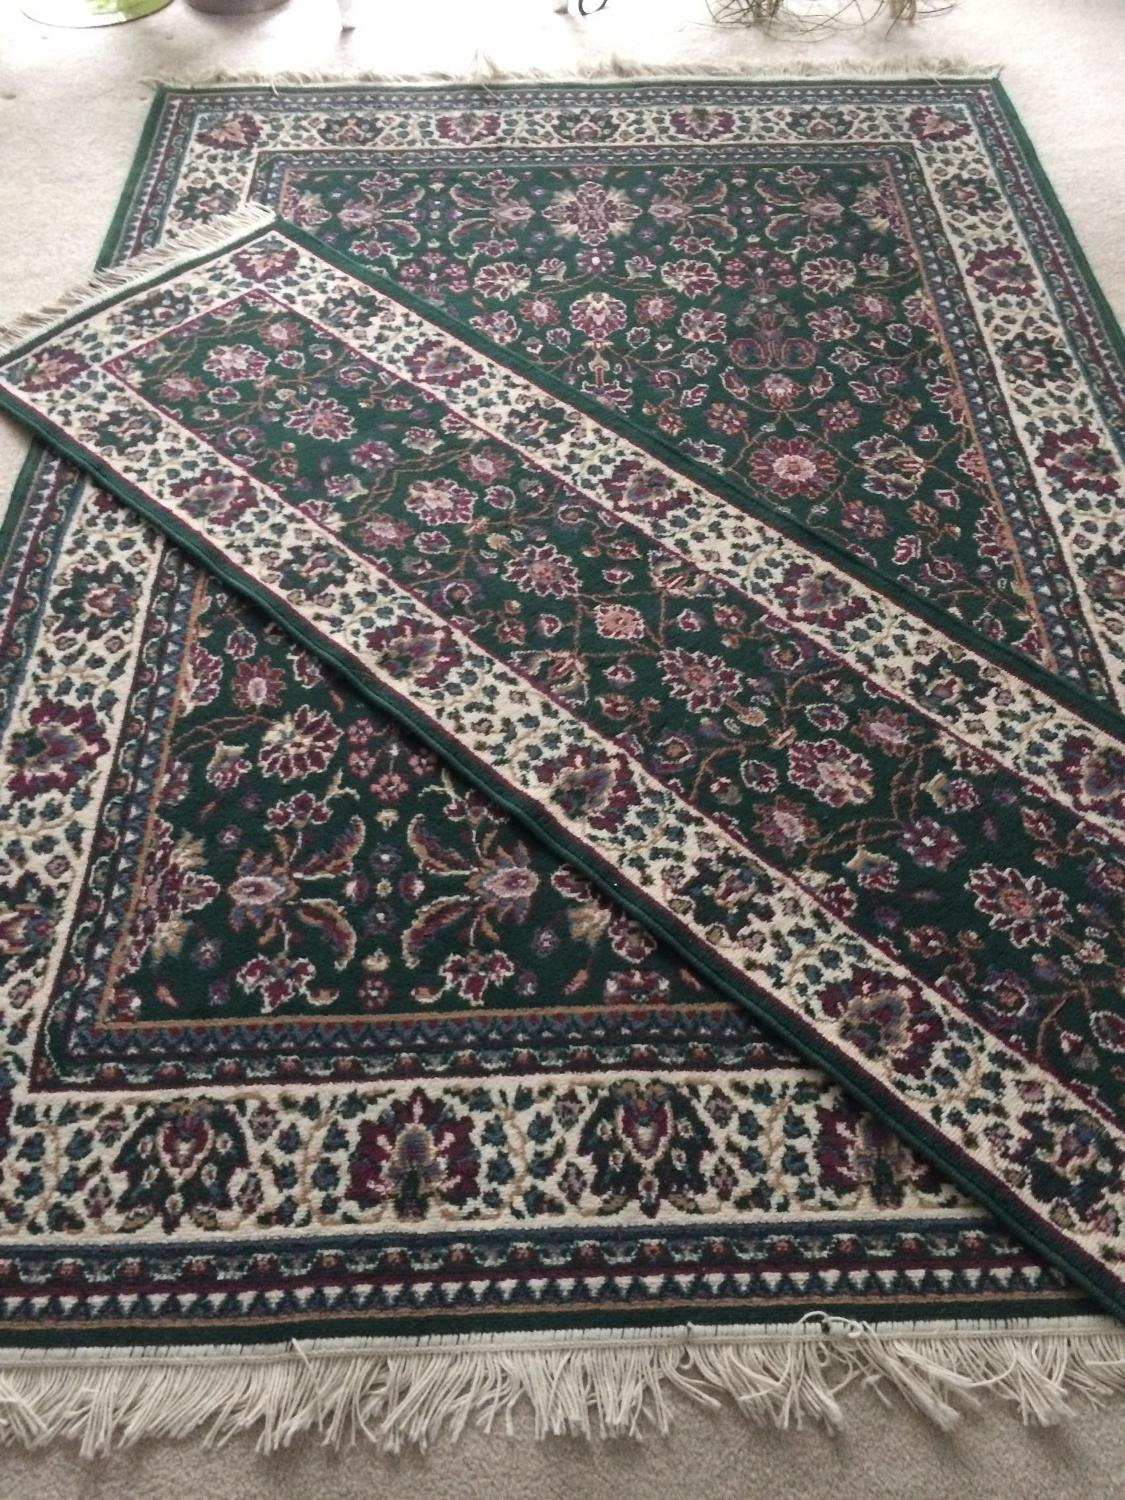 Best rug and runner hunter green and mauve for sale in for Best store to buy rugs